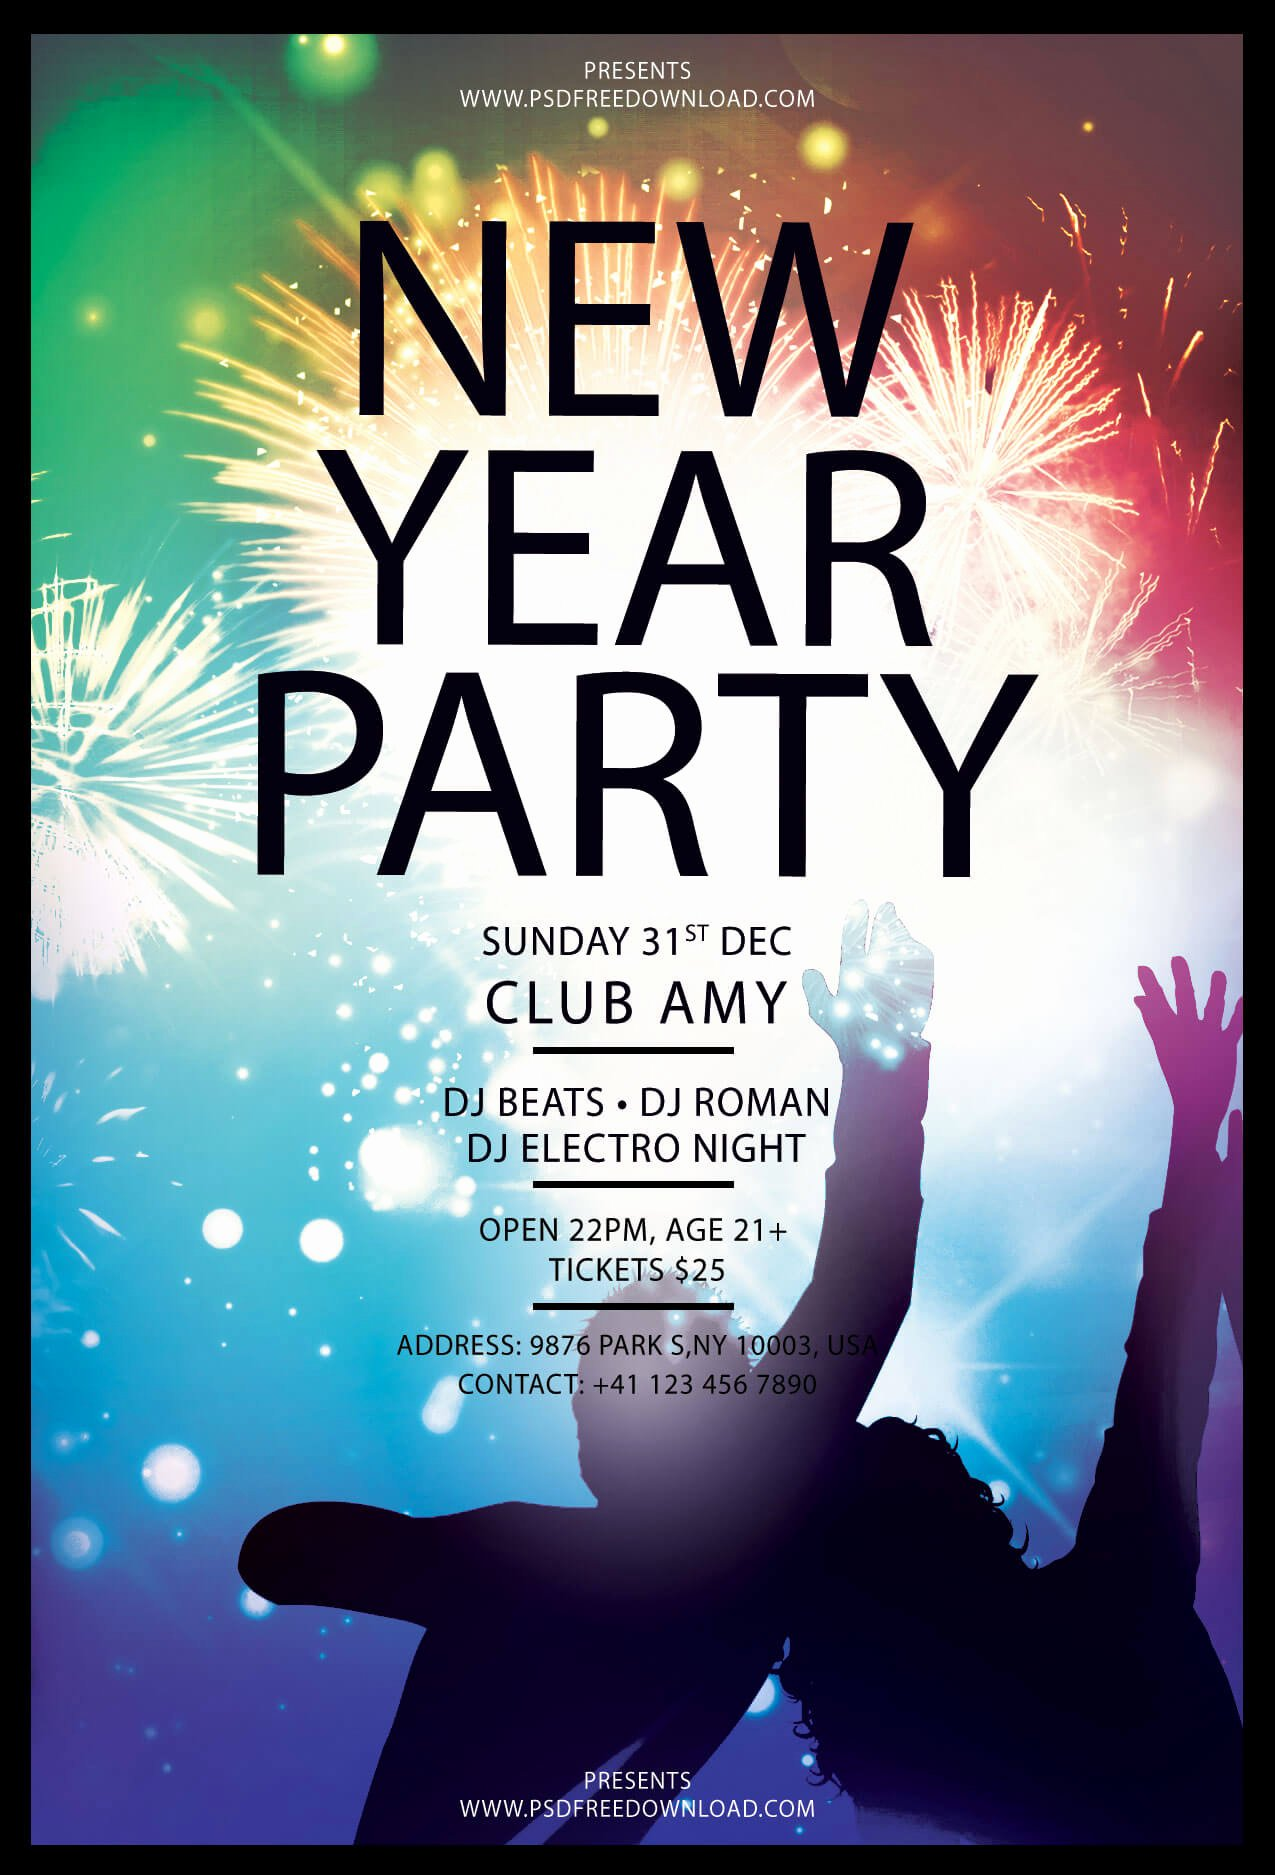 Free Flyer Template Downloads Best Of New Year Party Flyer Free Template Psd